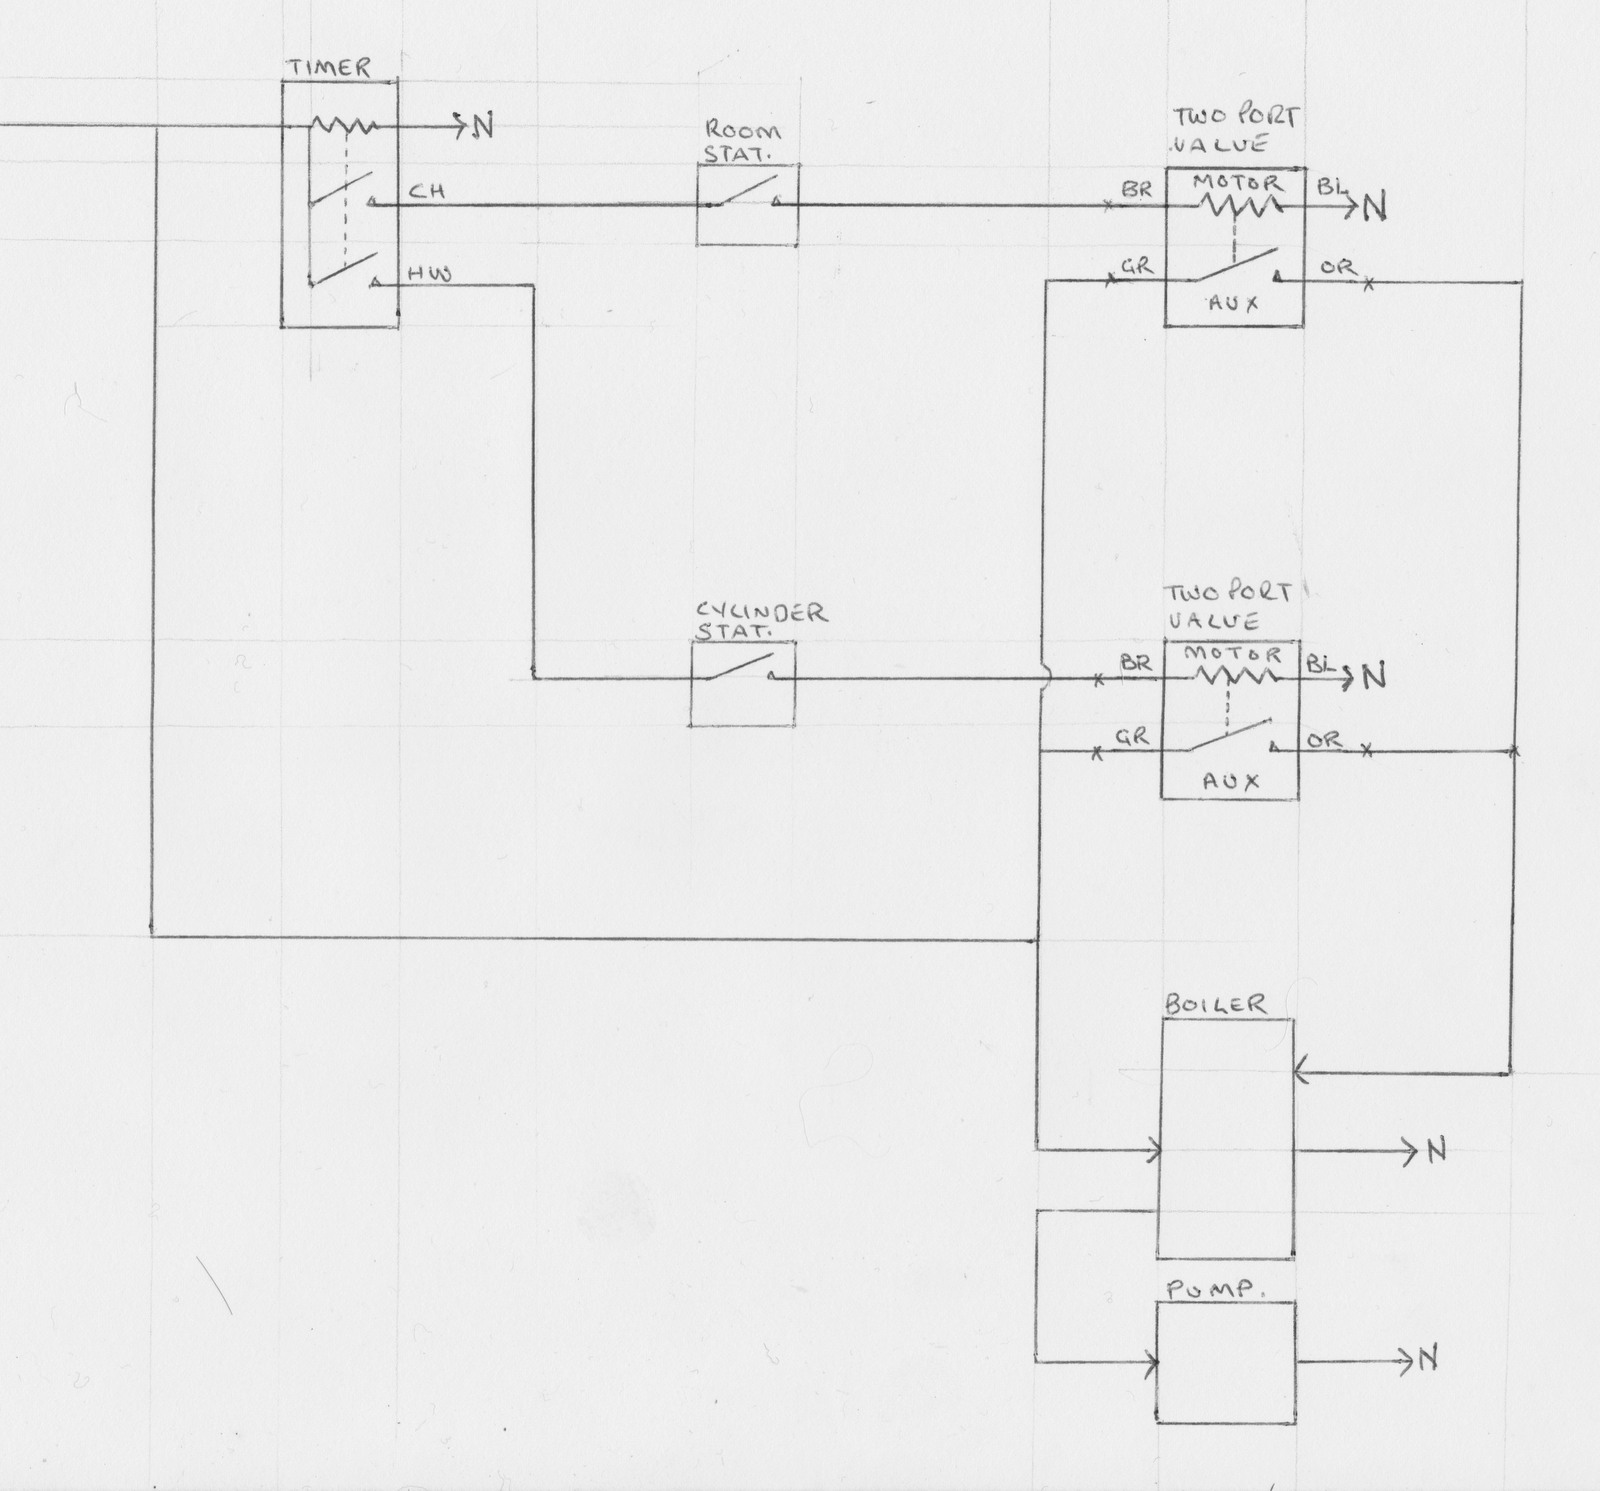 Unique Wiring Diagrams S Plan Heating Systems diagram